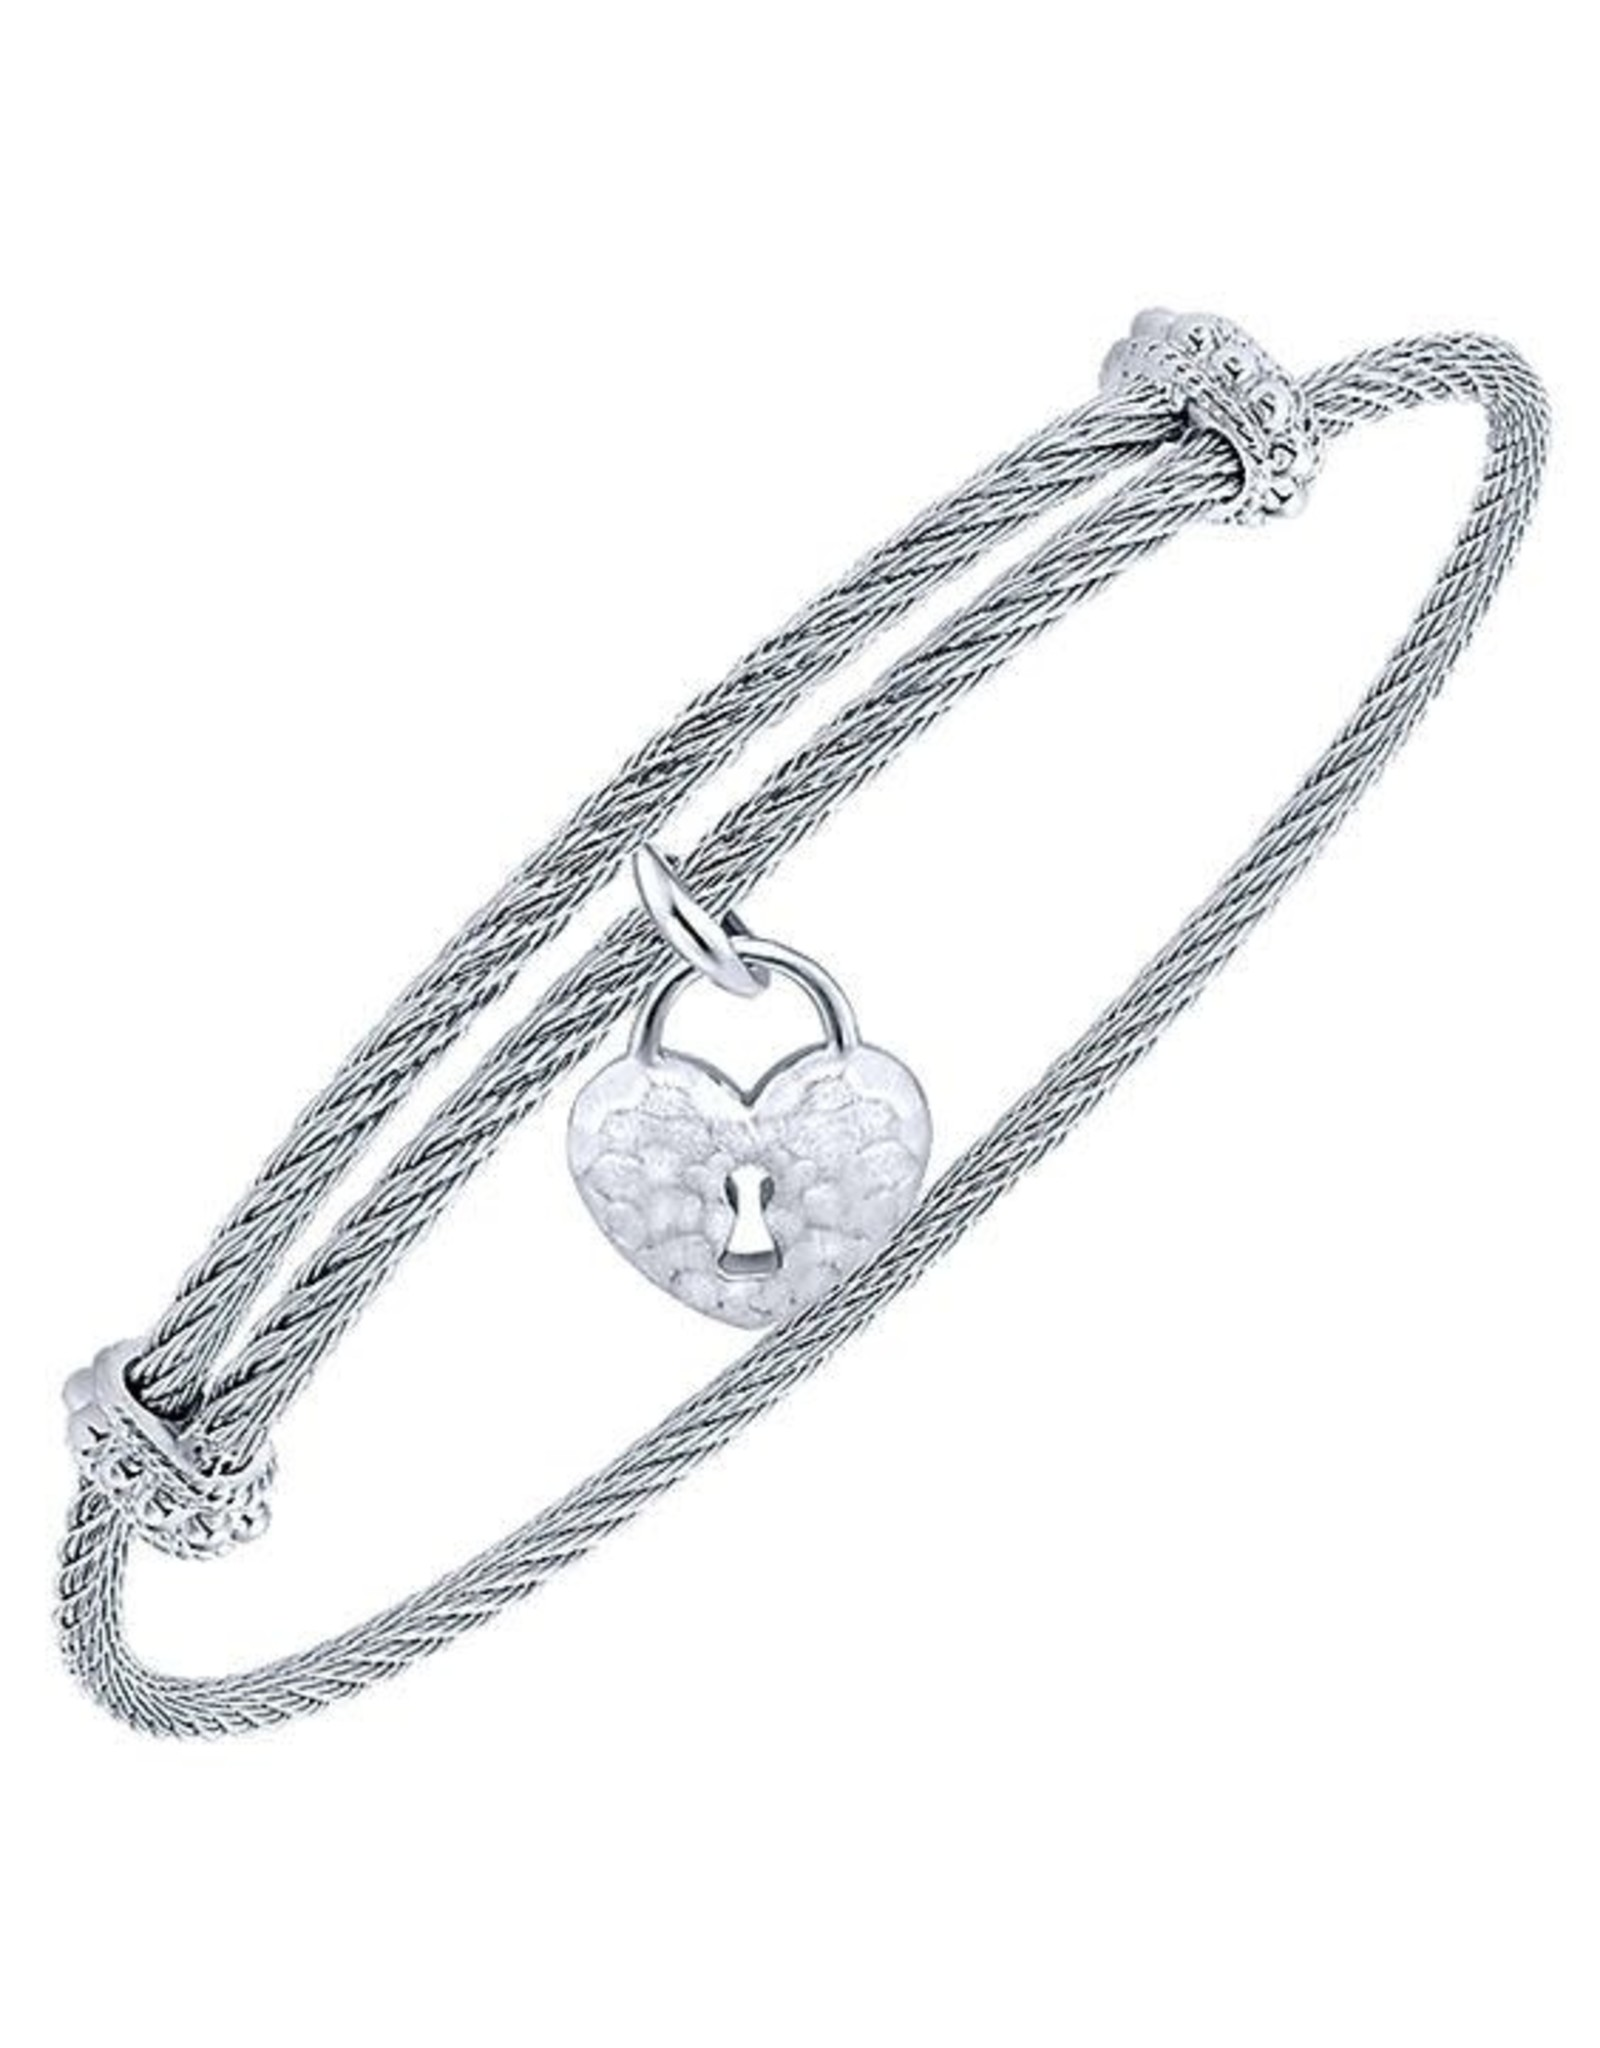 Adjustable Twisted Cable Stainless Steel Bangle Bracelet with Sterling Silver Heart Lock Charm